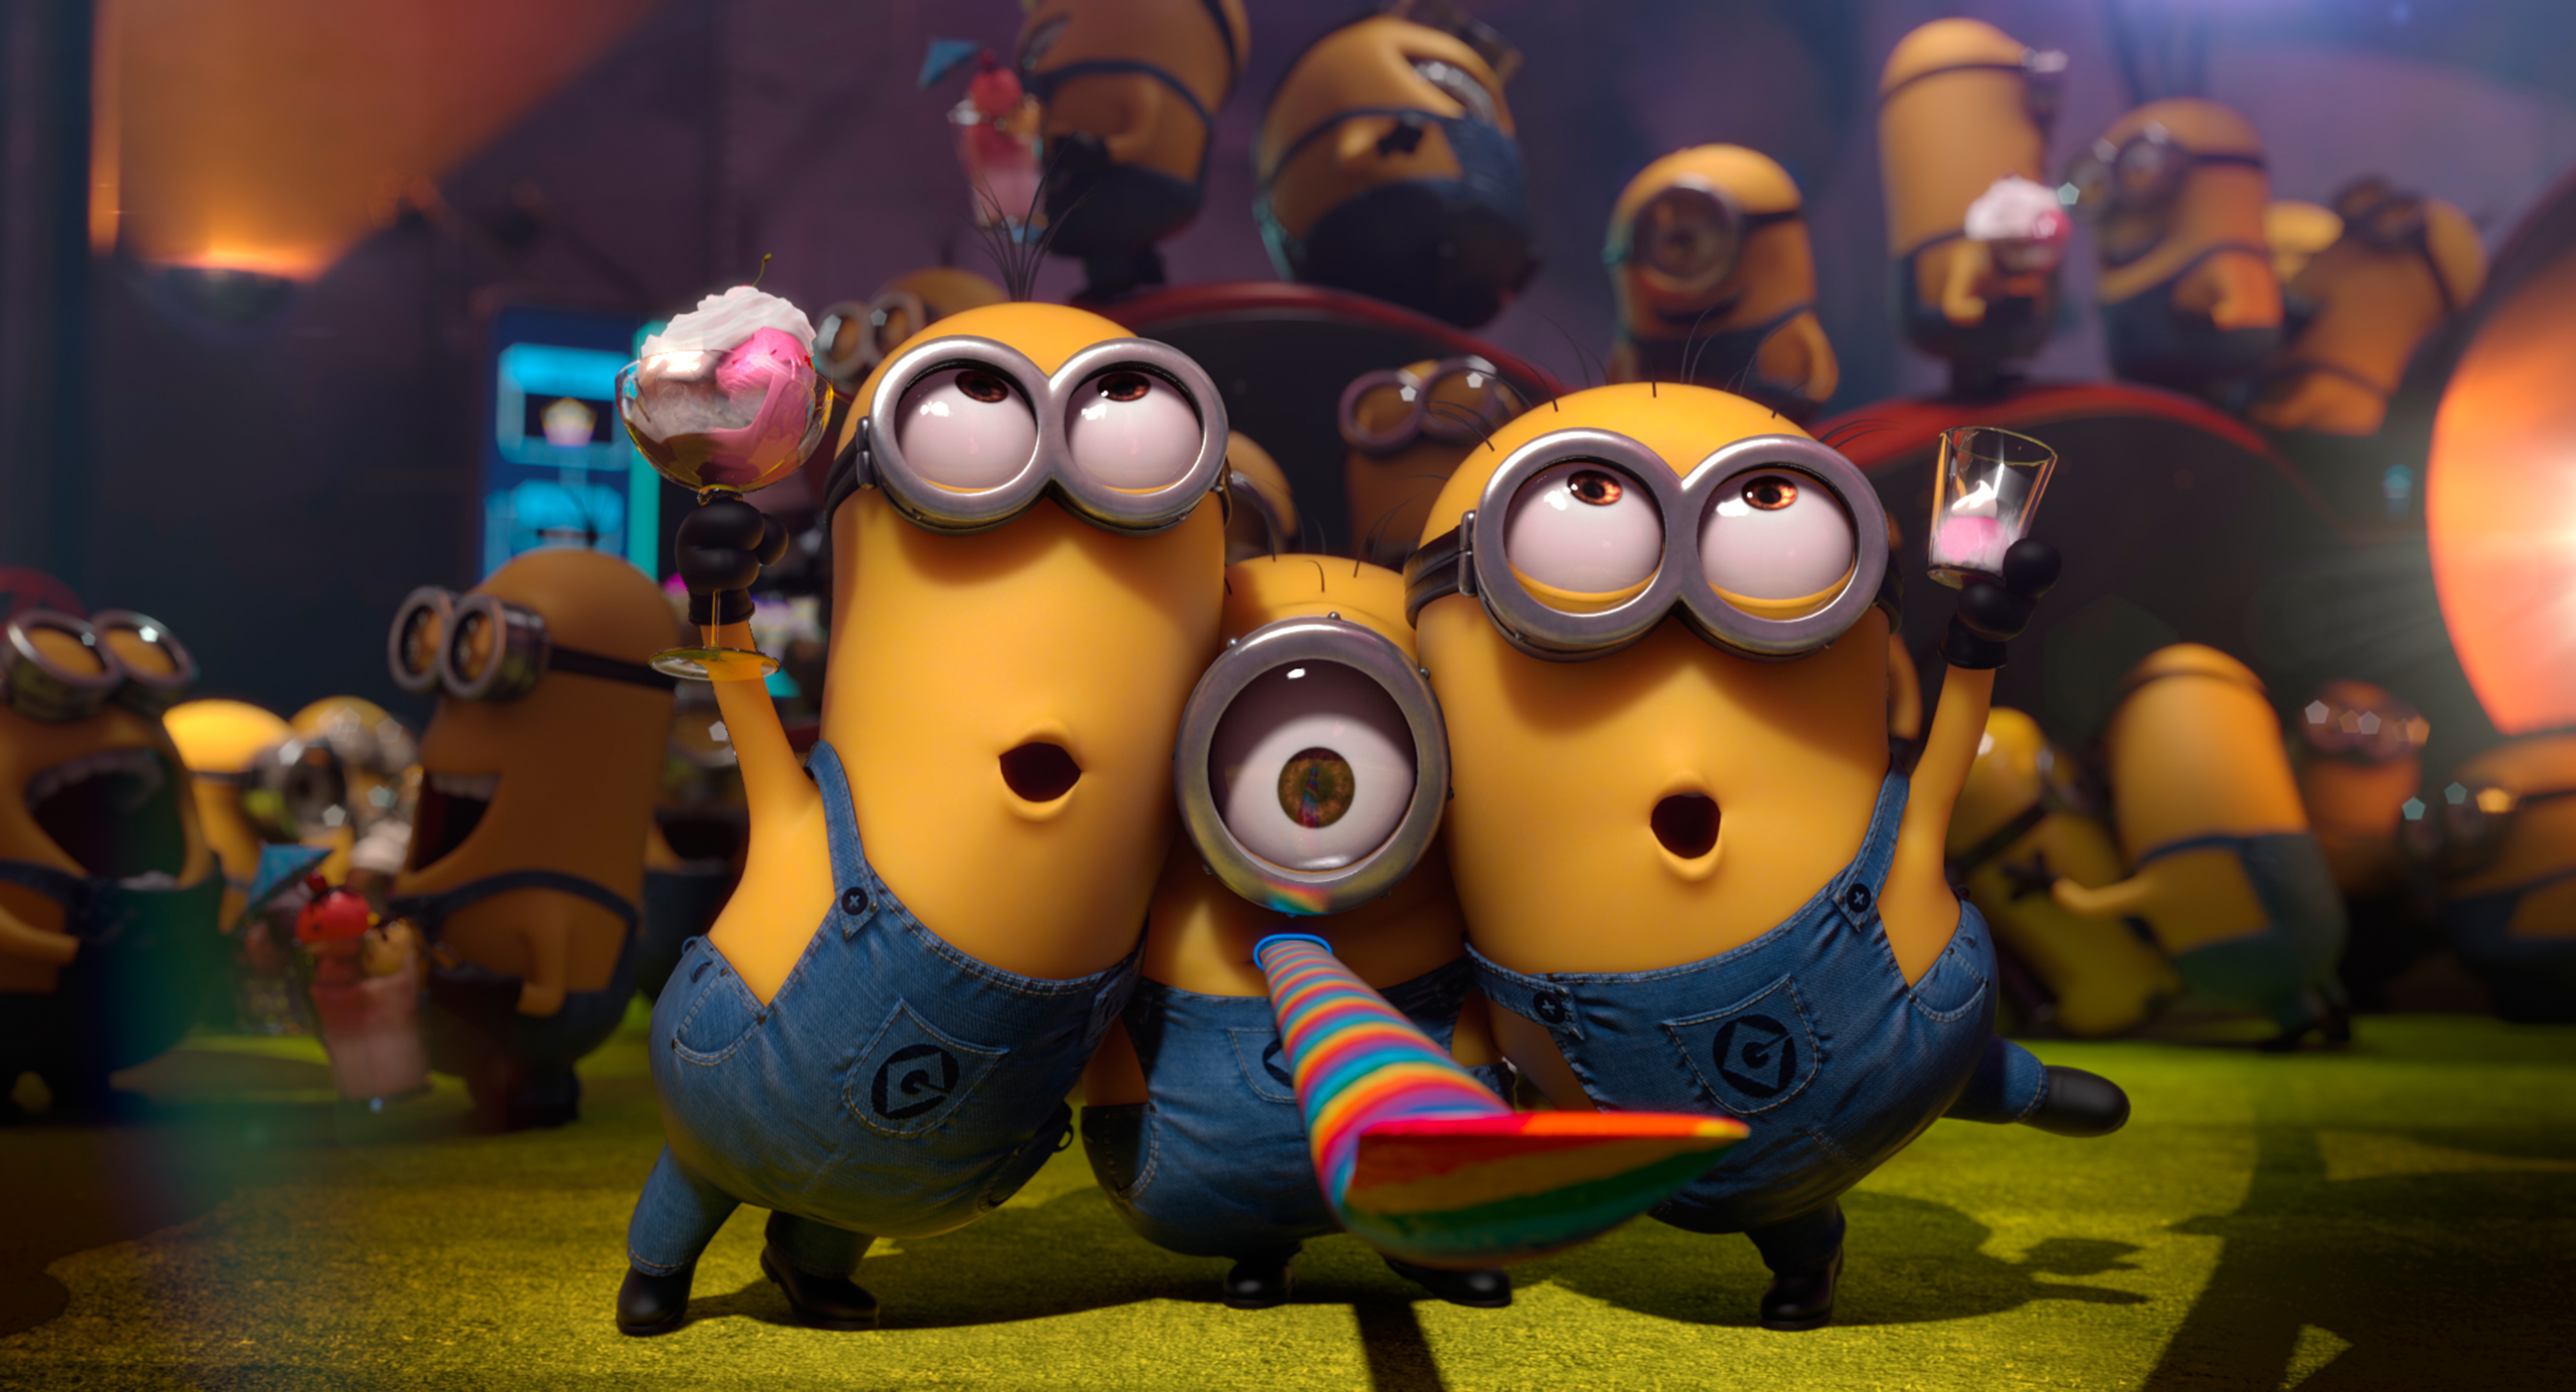 Minions Despicable Me 2 Wide HD Wallpapers 2013 3750x2027